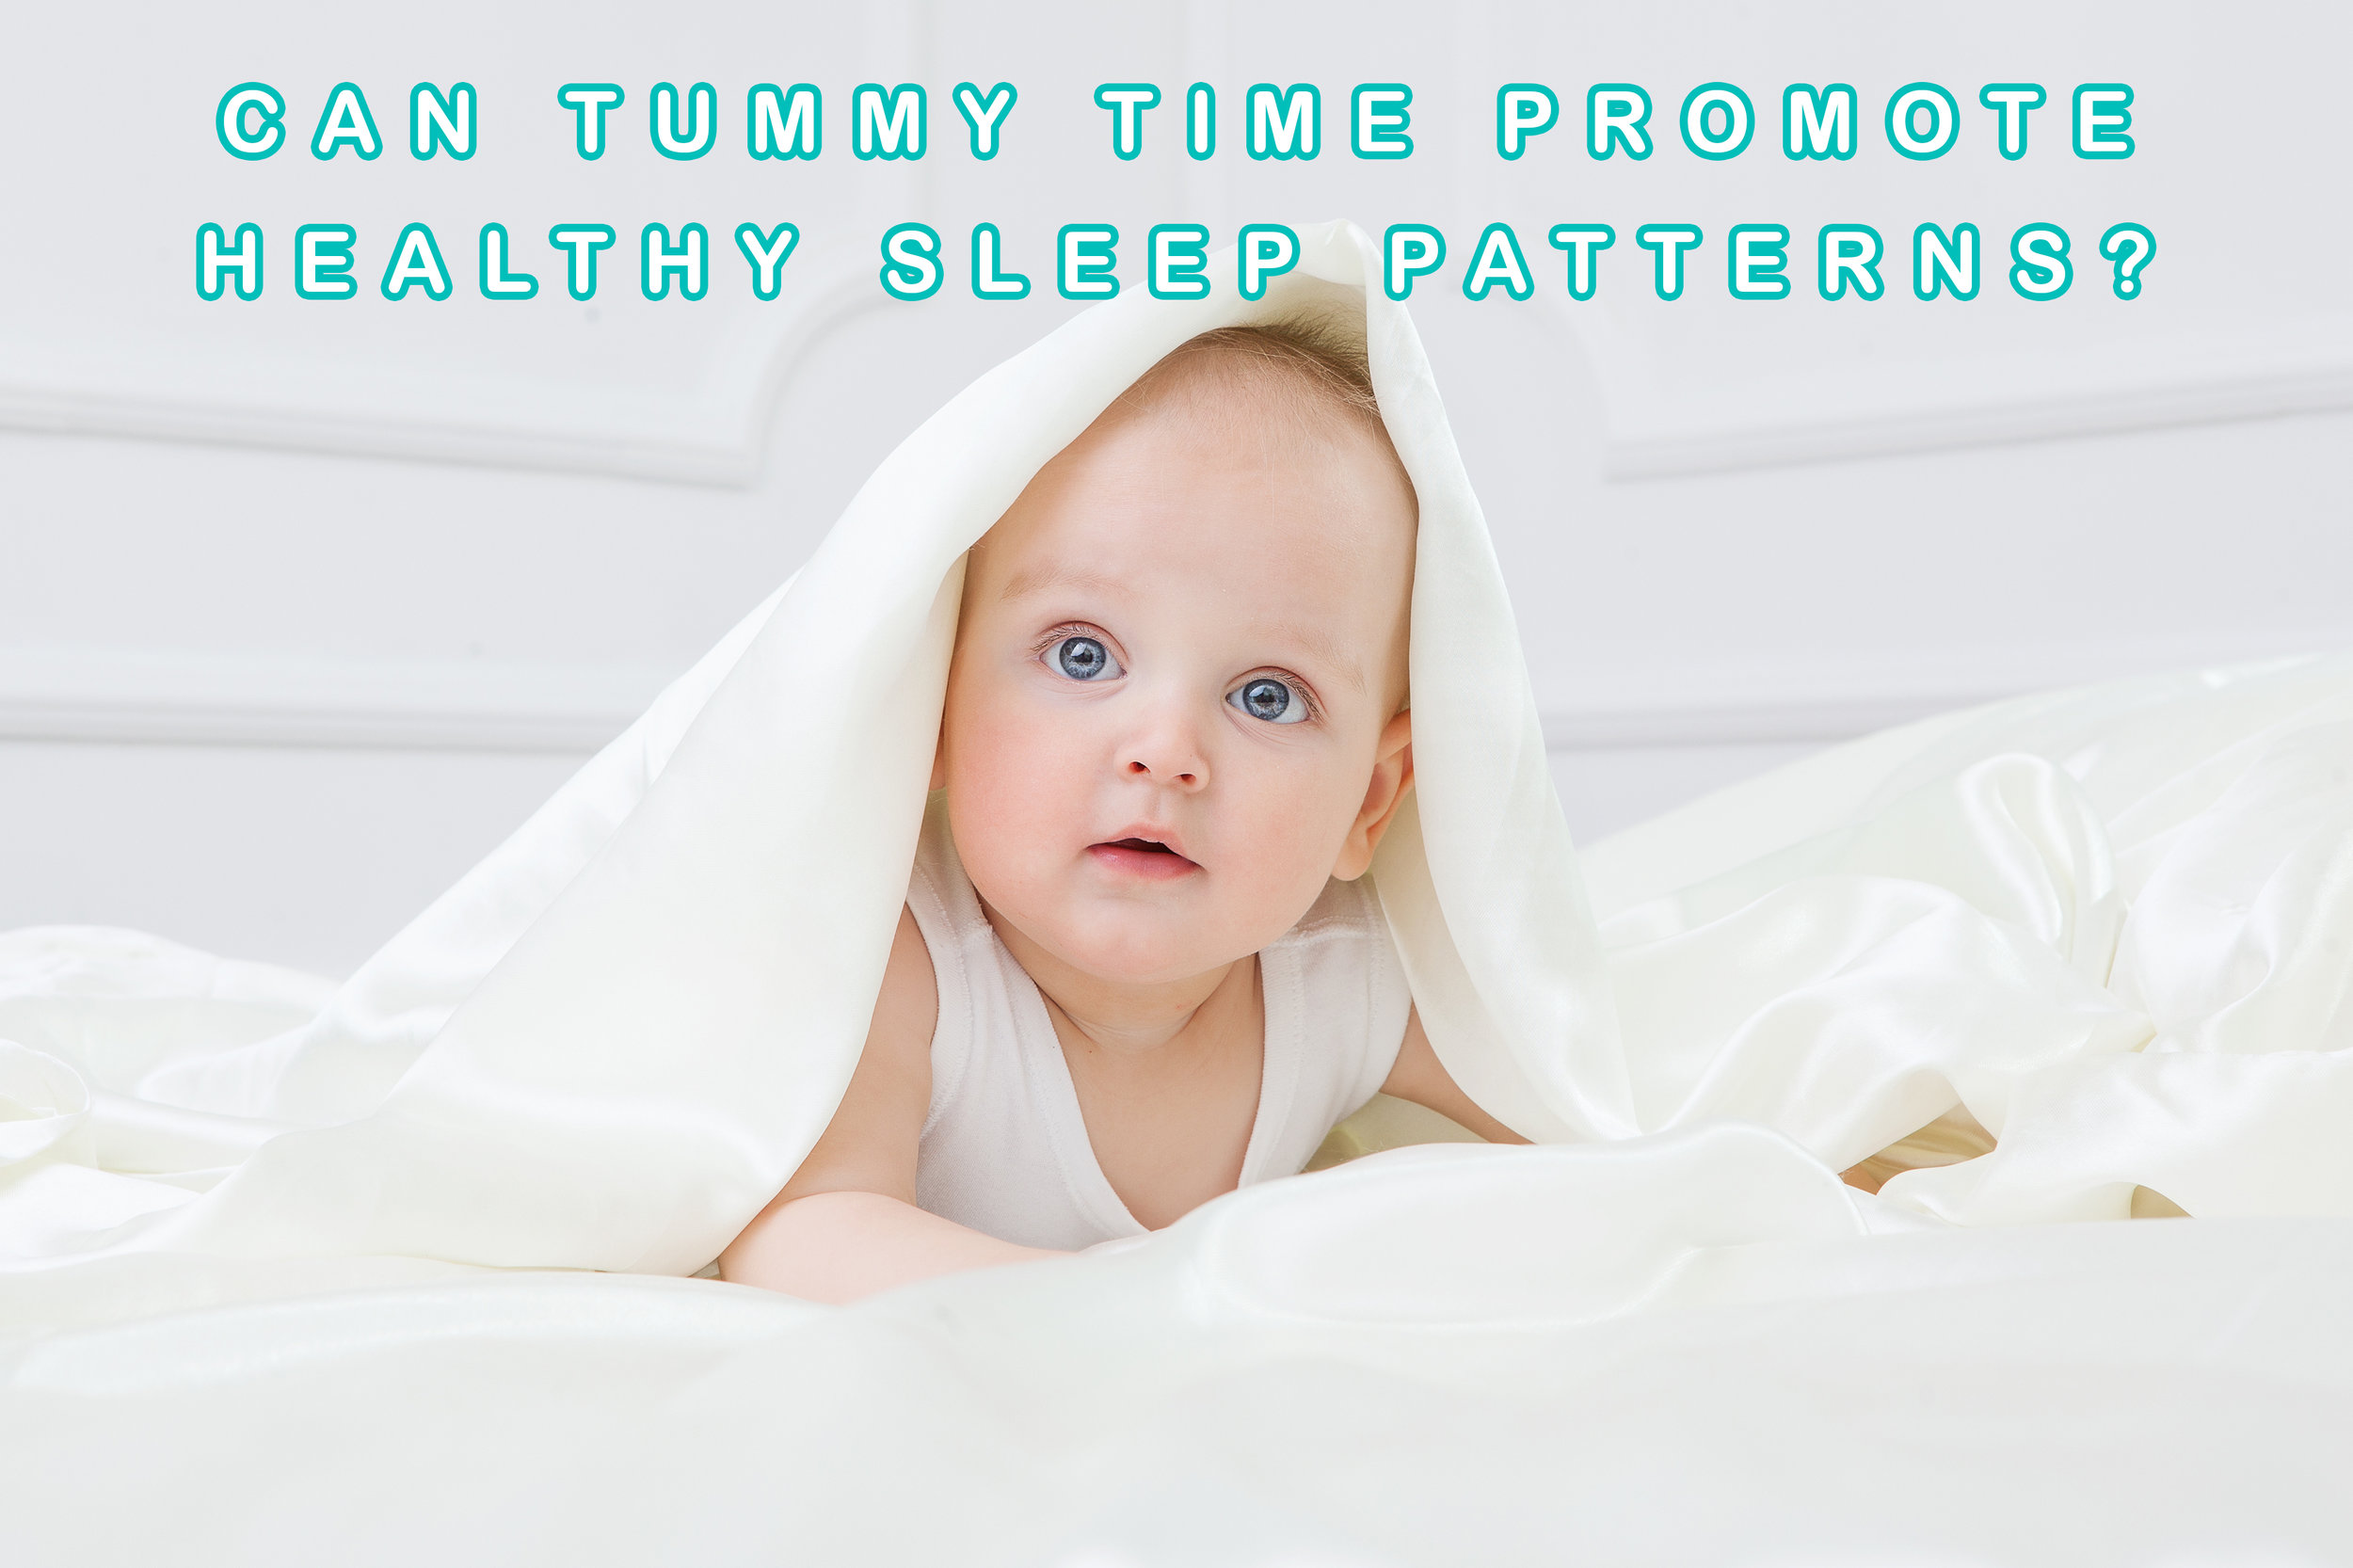 Can Tummy Time Promote Healthy Sleep Patterns?